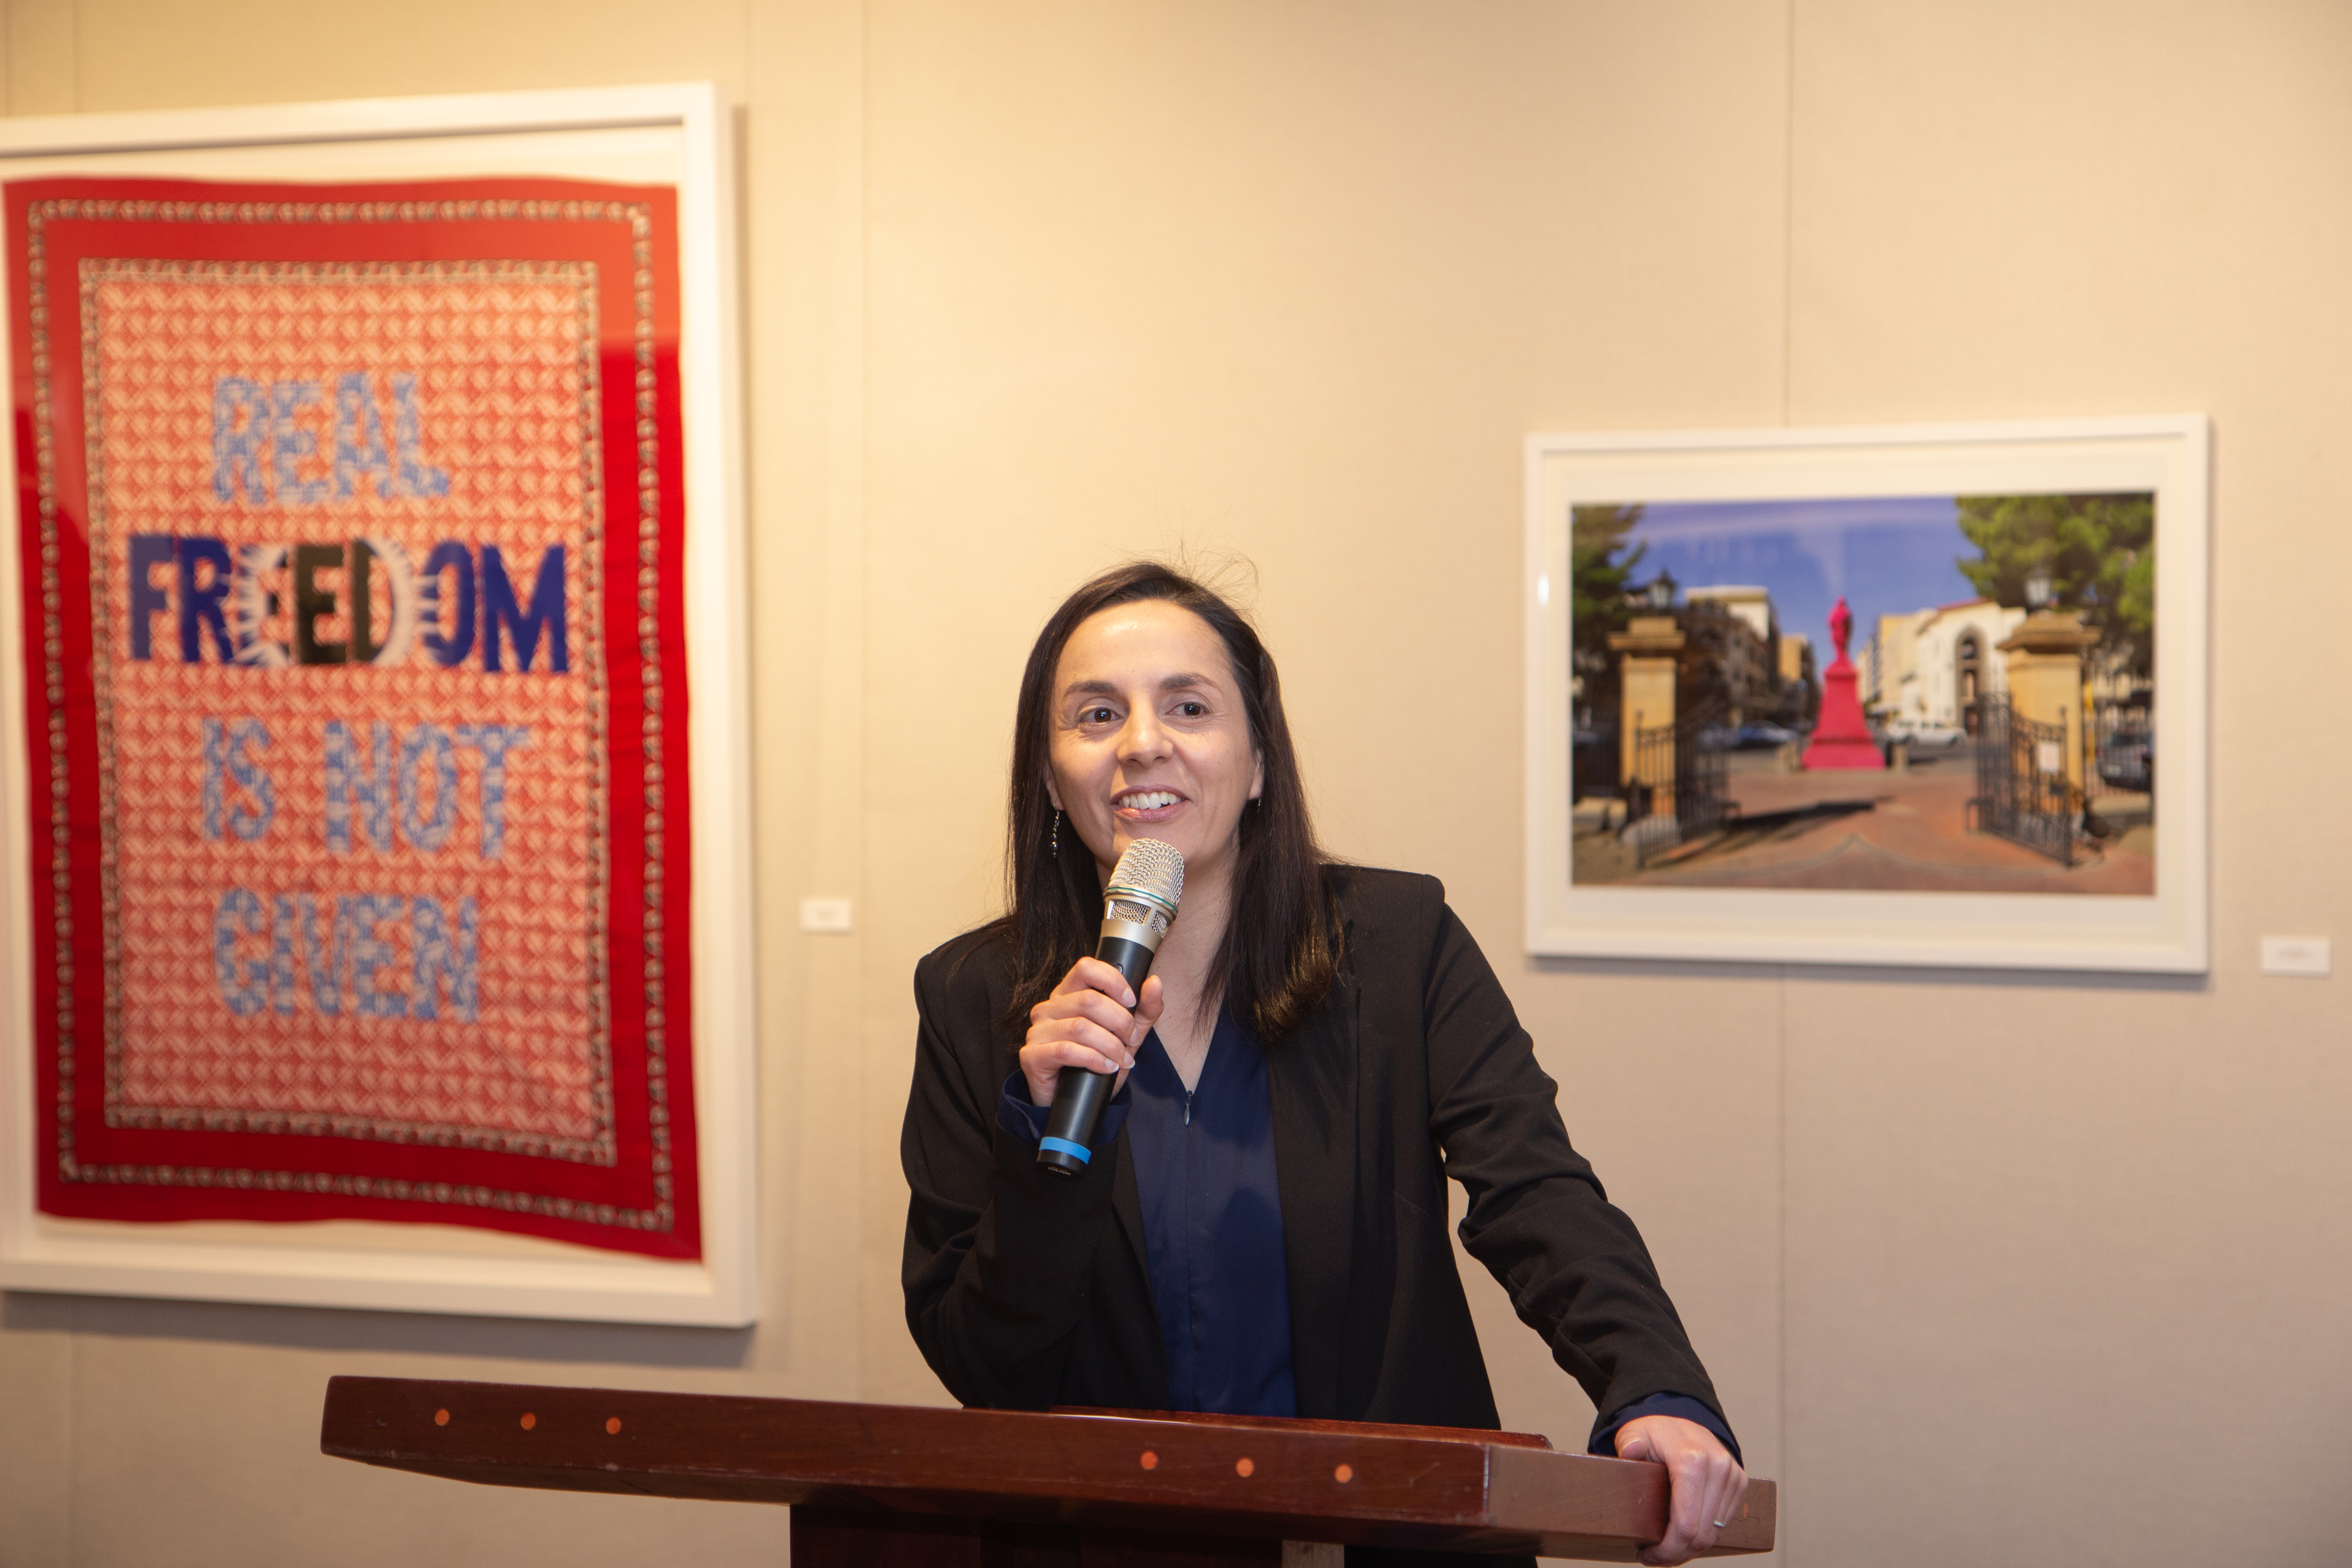 Angela de Jesus, at the Opening exhibition